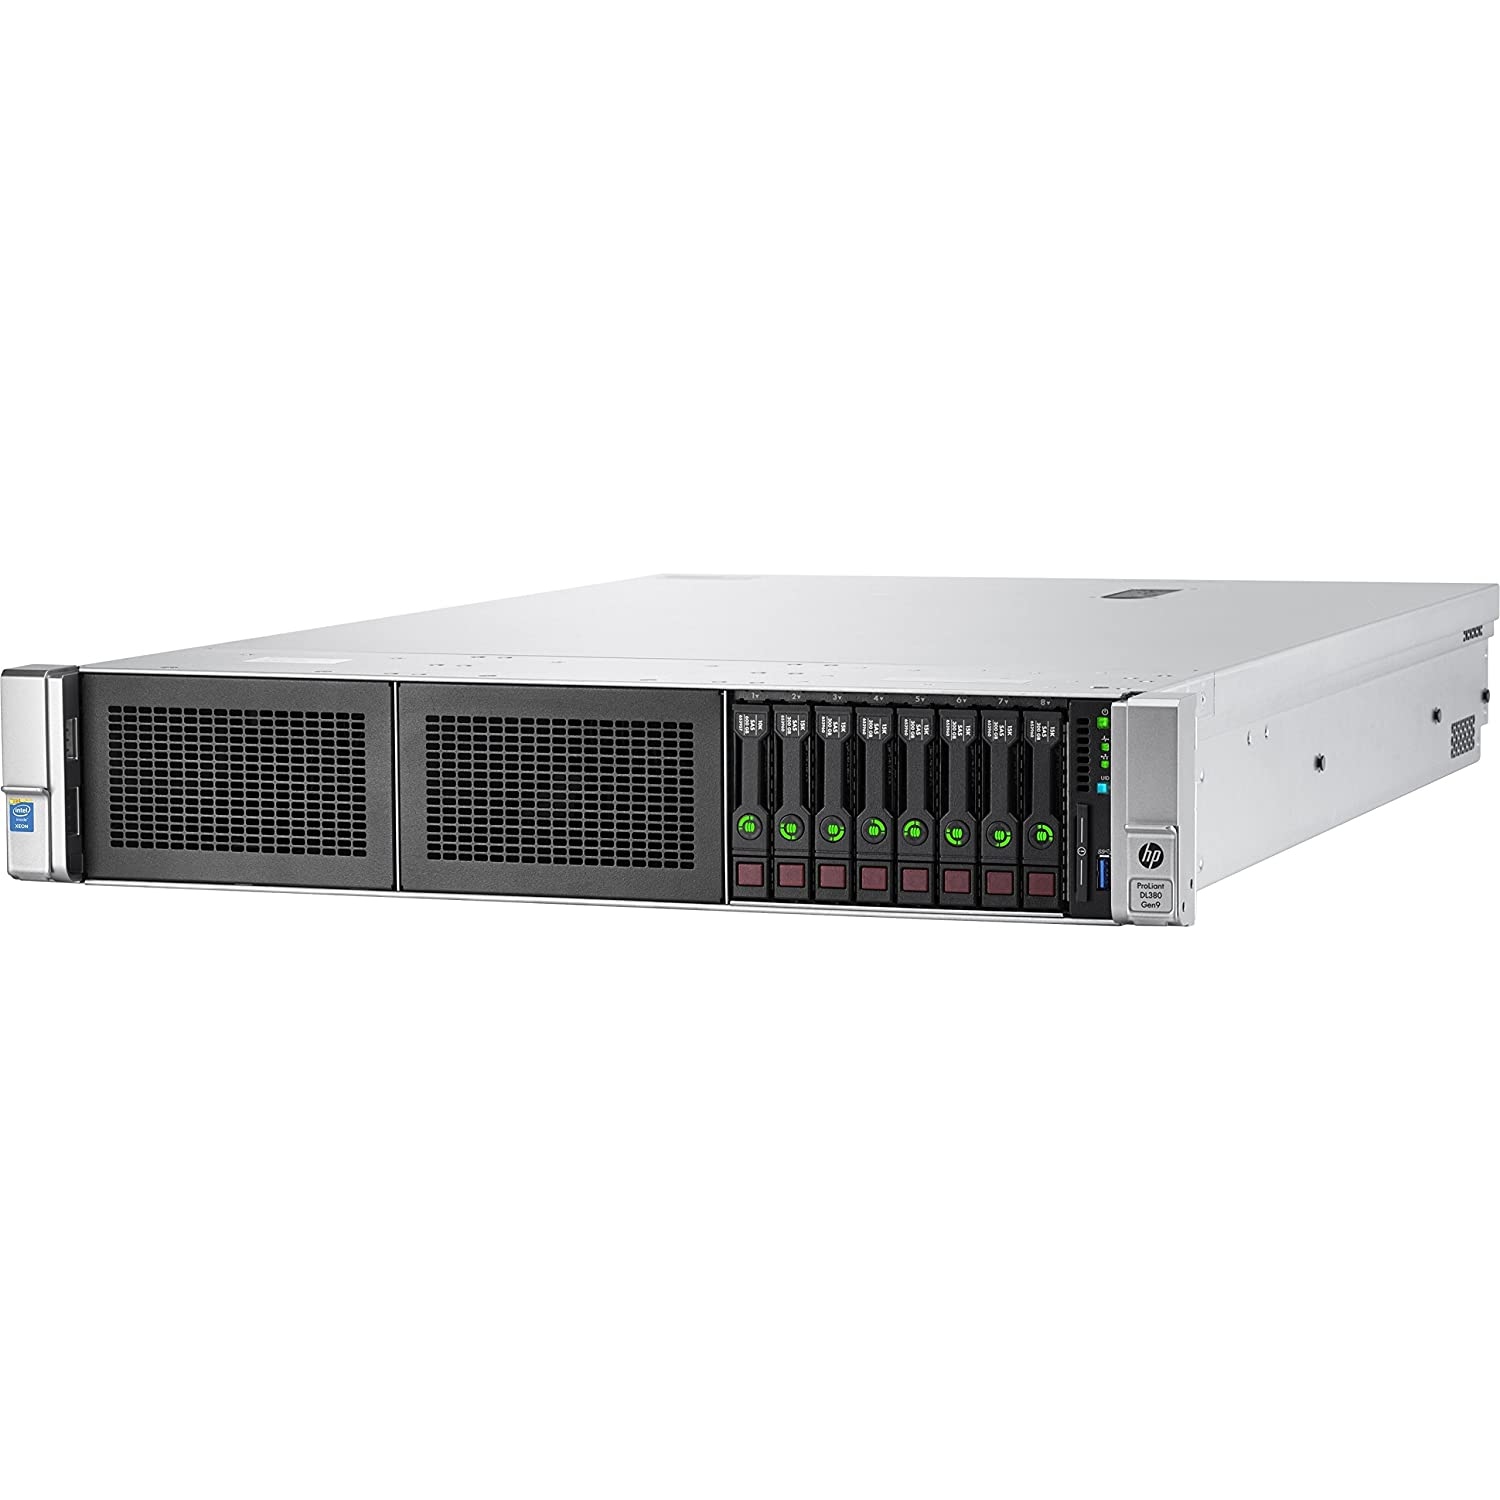 HPE DL380 G9 2U E5-2620v4 2.1GHz 8C 16GB 2400R SR ohne HDD max.8X hp SFF P440ar/2GB 4x1Gb Flex 500W(P) hp 3J-VOS (WW) Hewlett Packard Enterprise 826682-B21